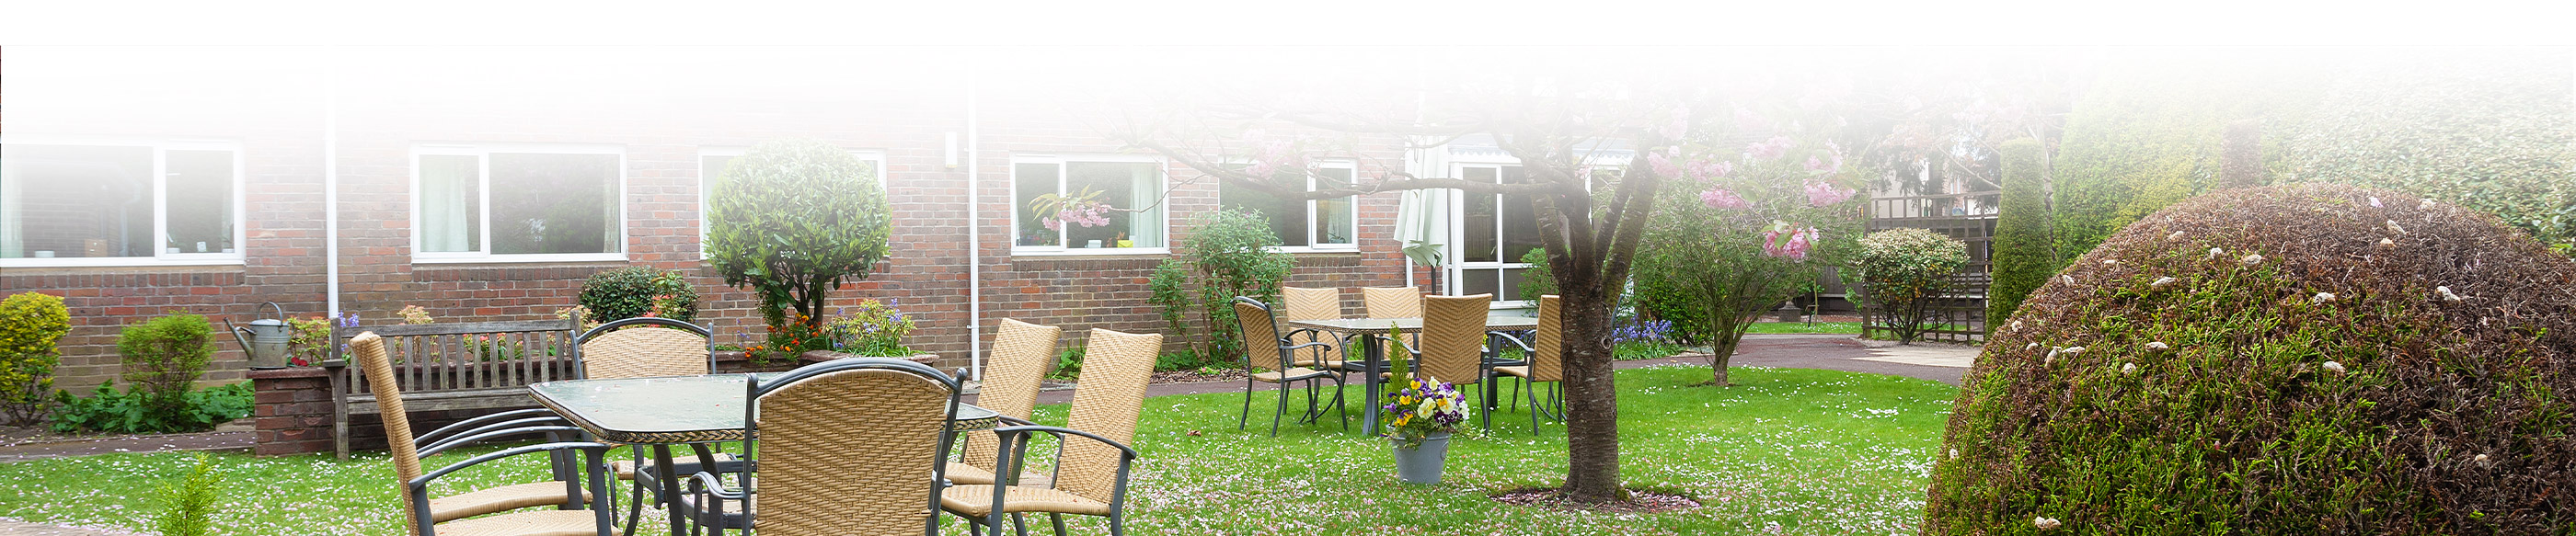 Outdoor table and chairs at Chestnut View Care Home Haslemere